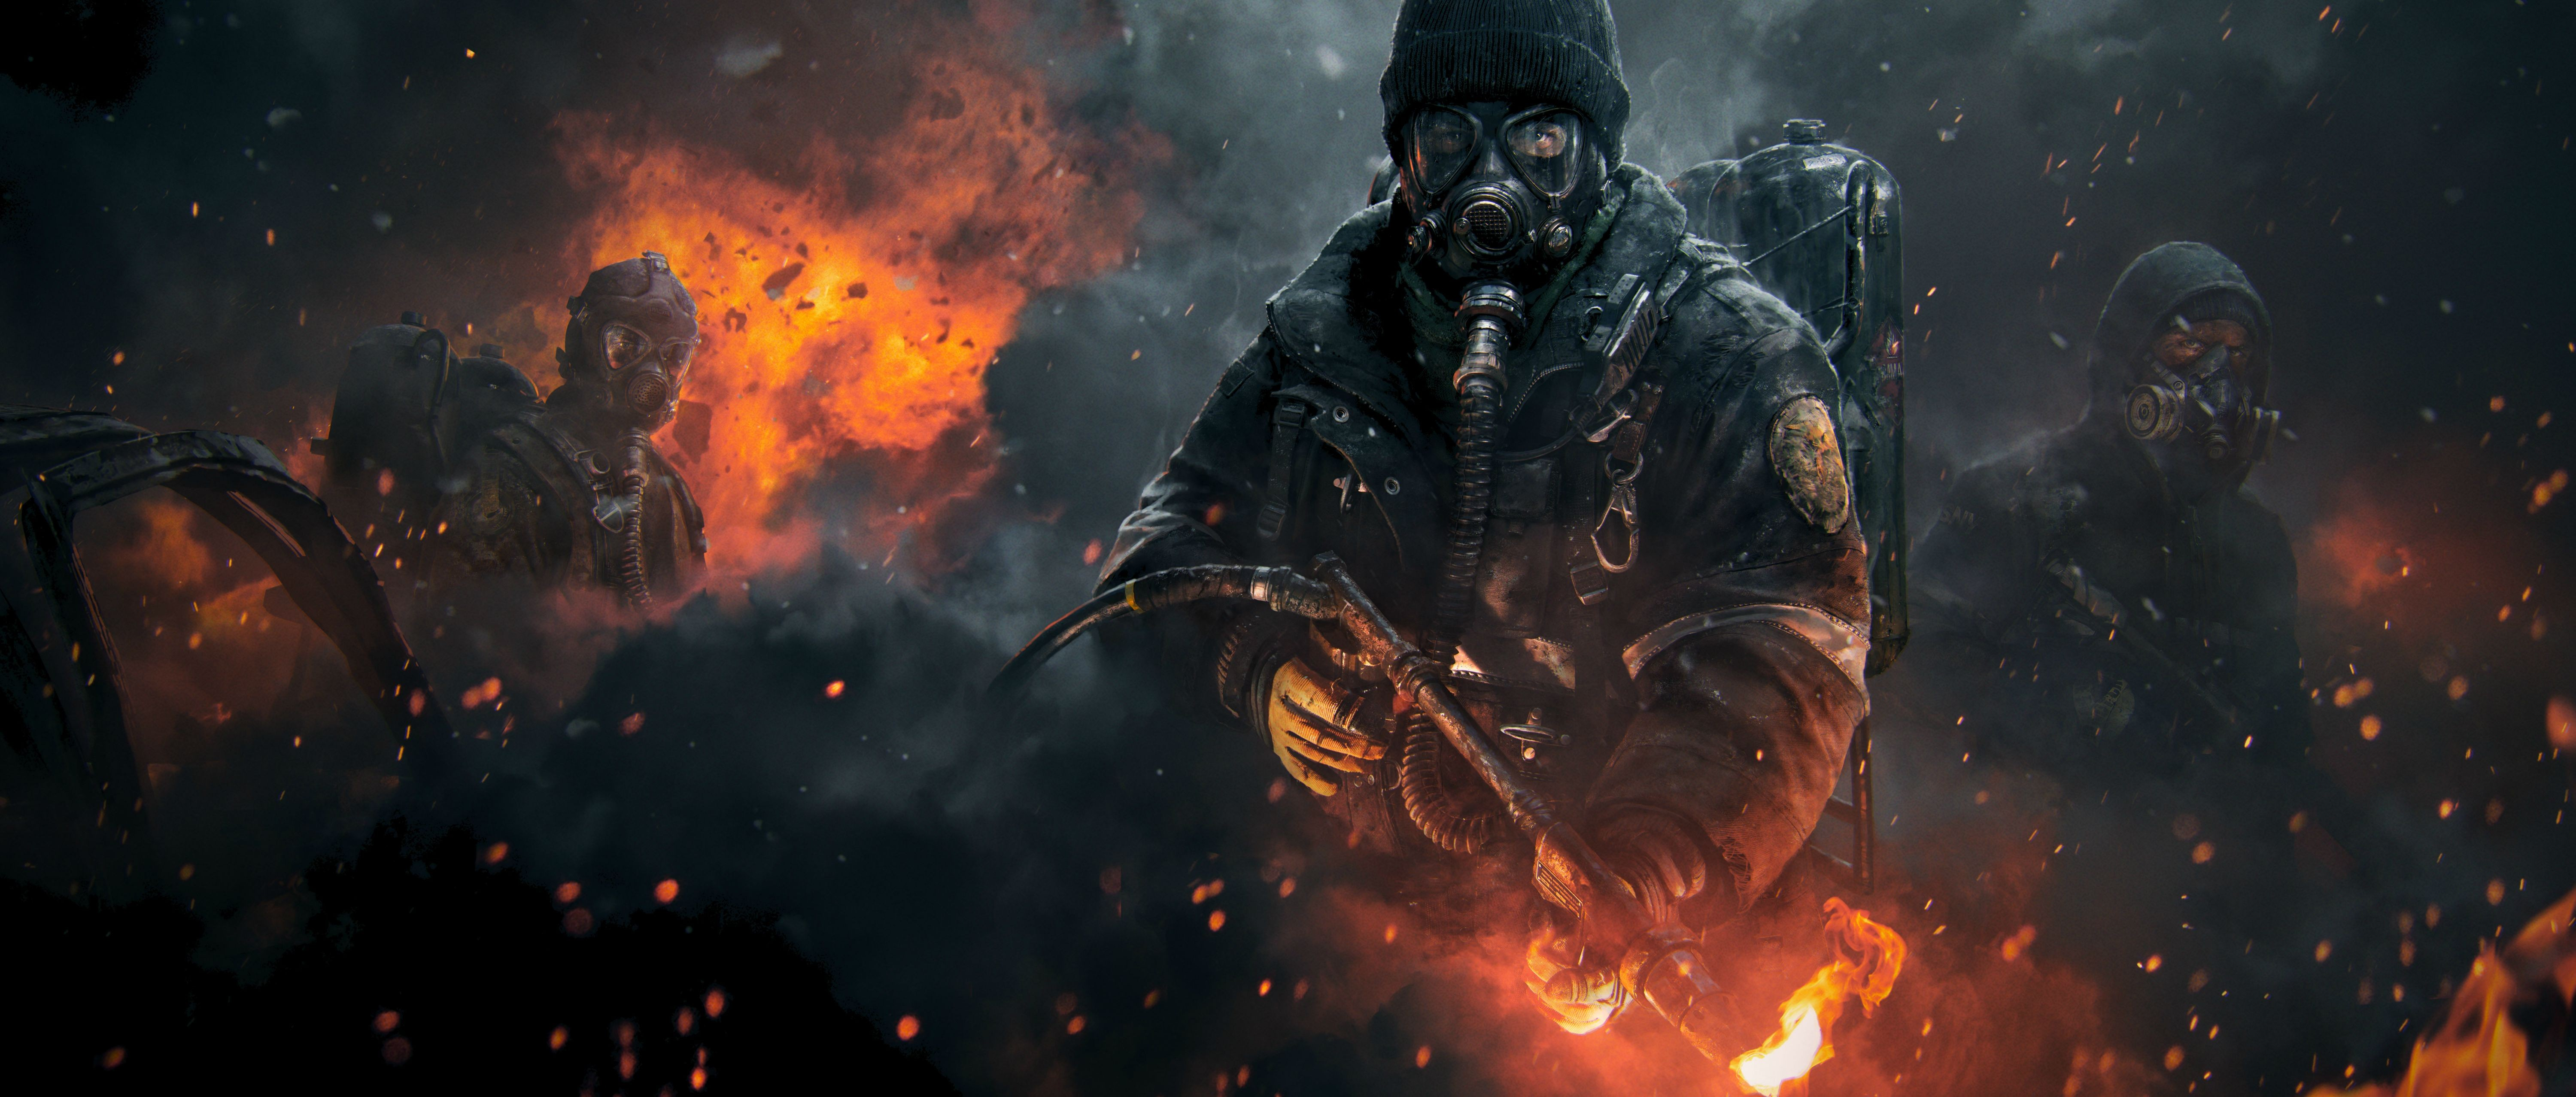 Wallpaper The Division, Tom Clancy\u2019s, flamethrower